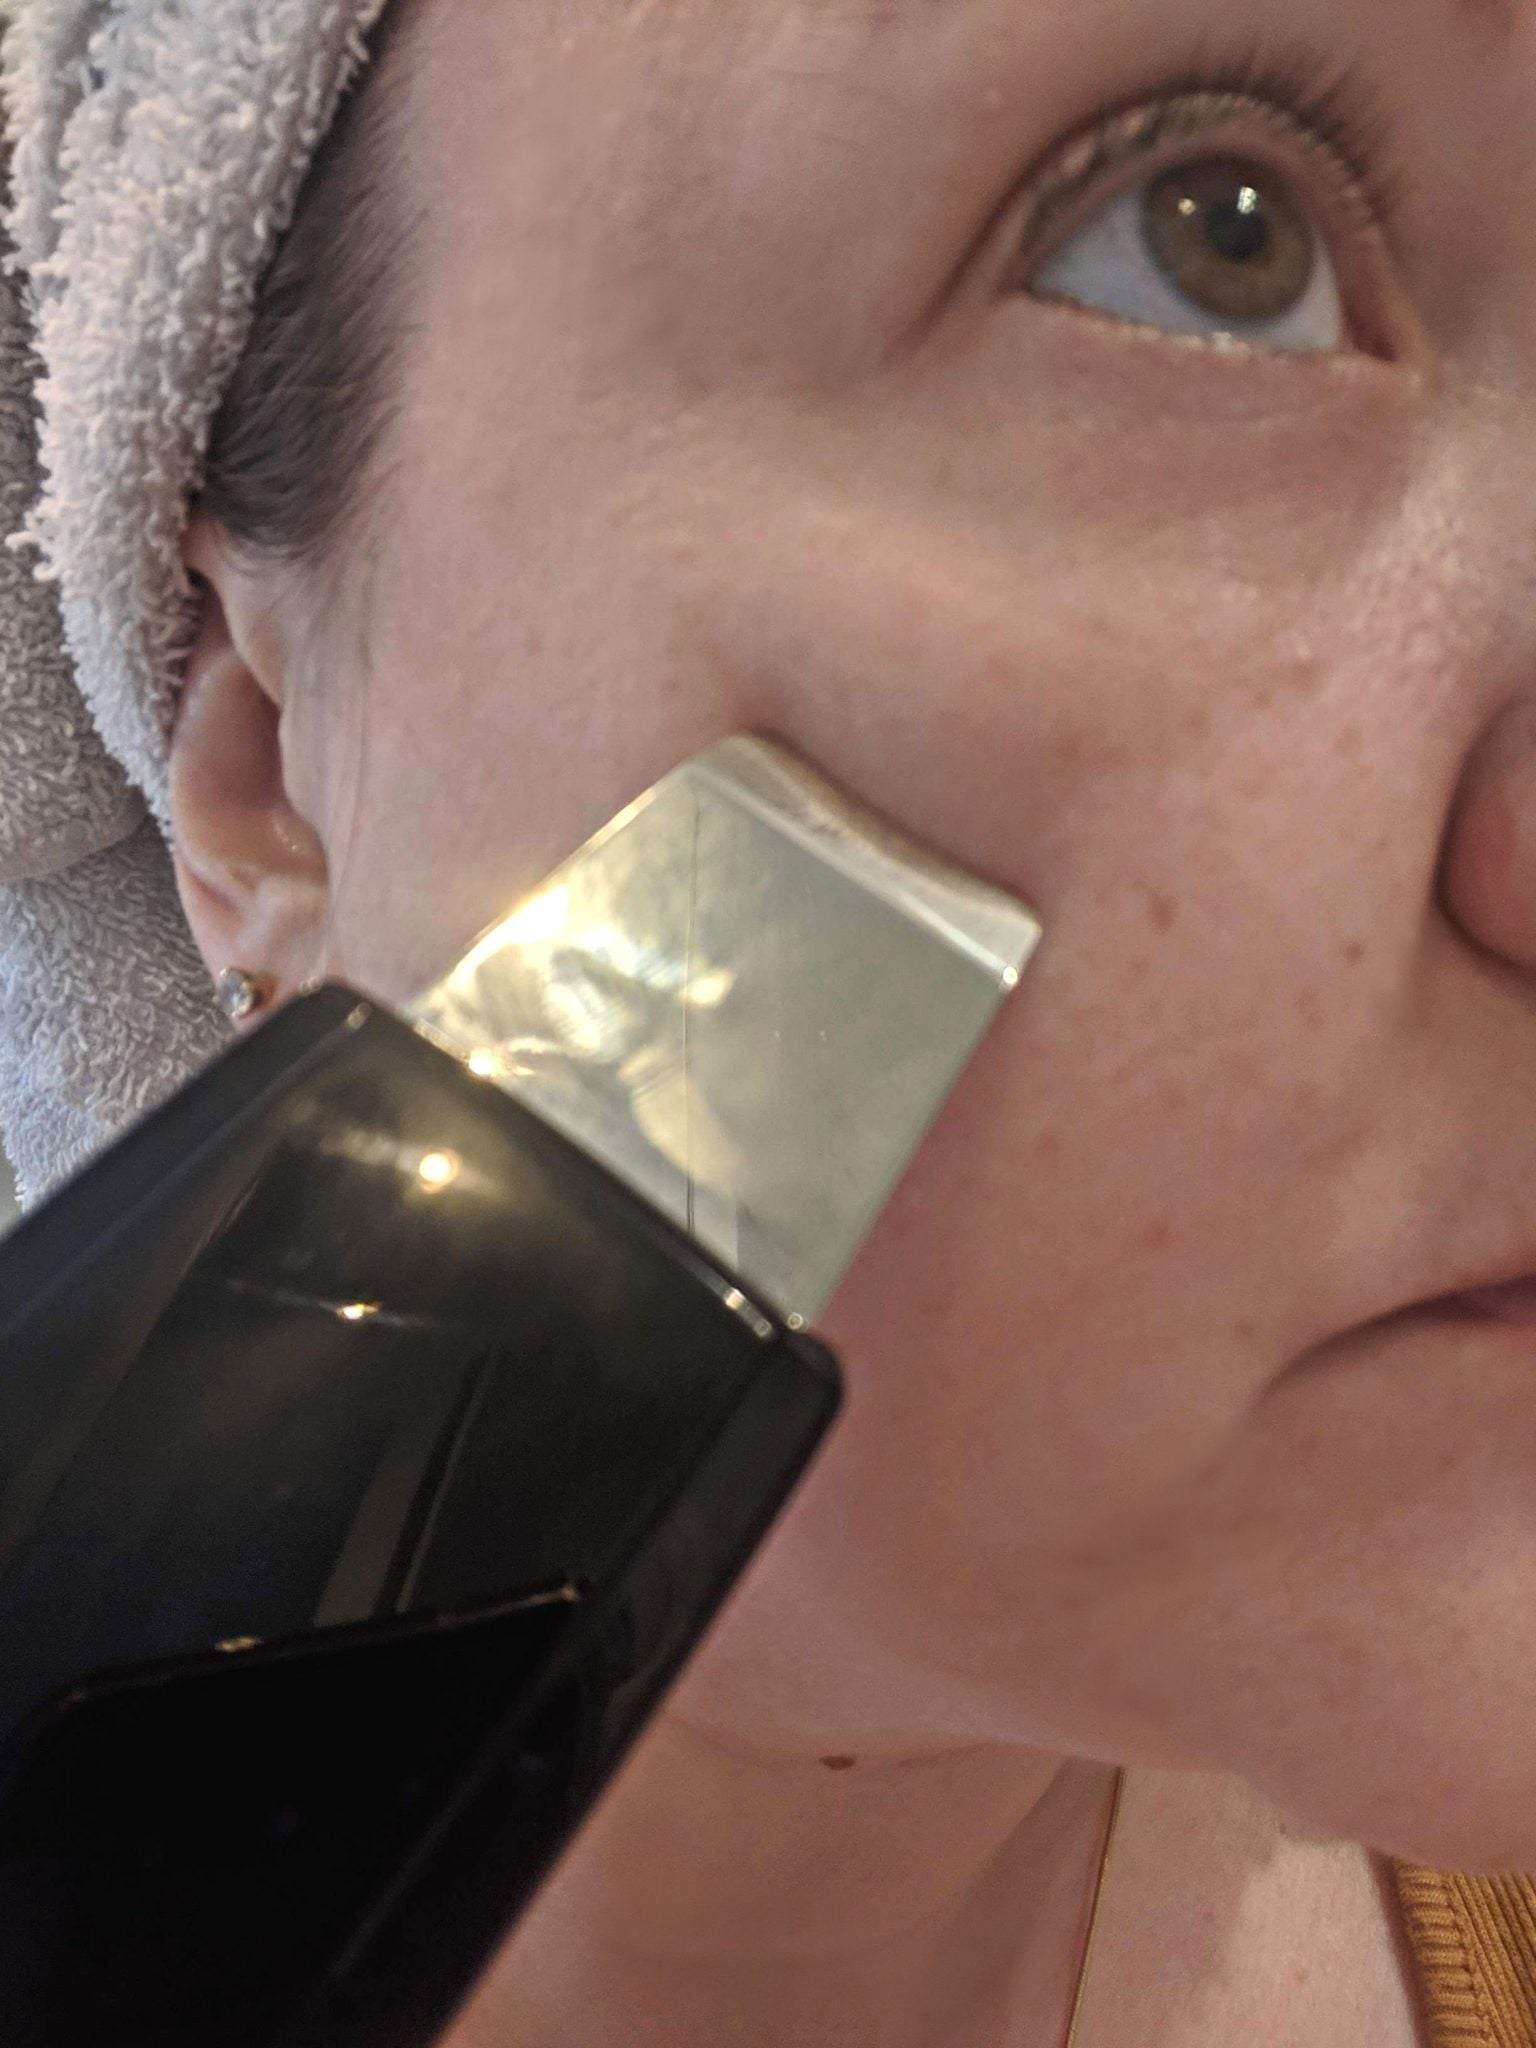 Trophy Skin LaBelle Ultrasonic Skin Spatula Review #skincare #skincarereviews #TrophySkin